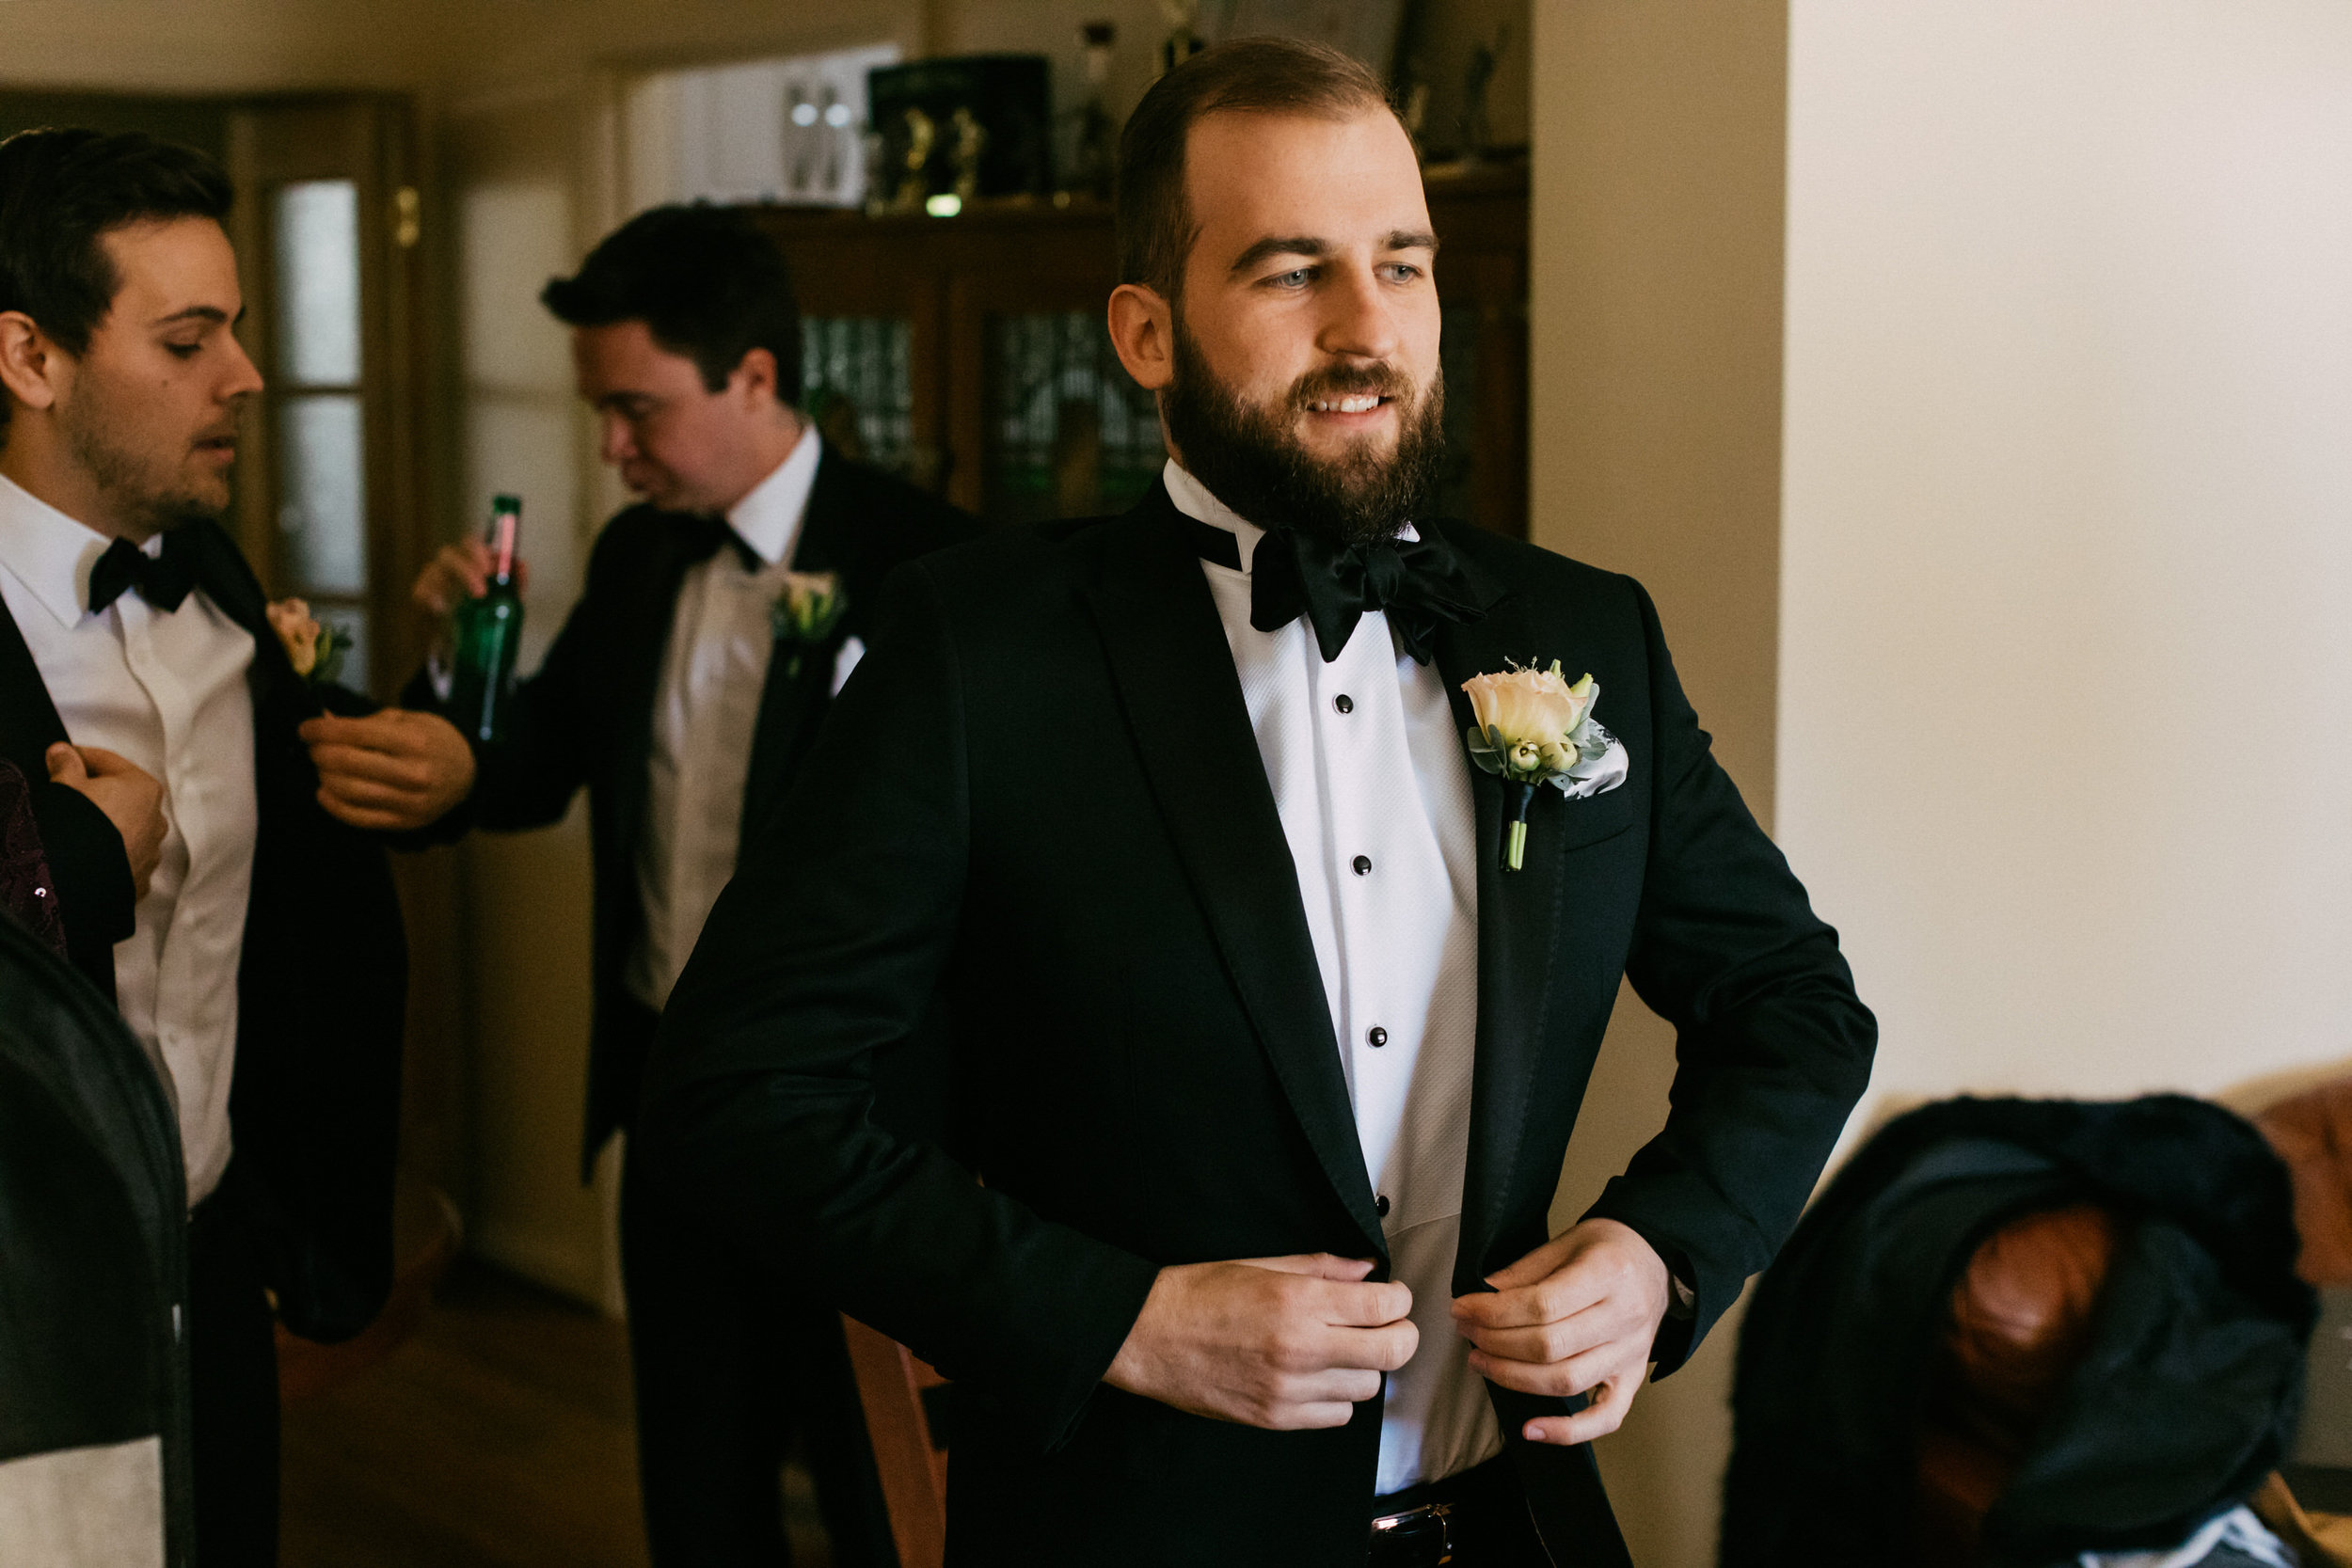 Adelaide Wedding 2019 003.jpg